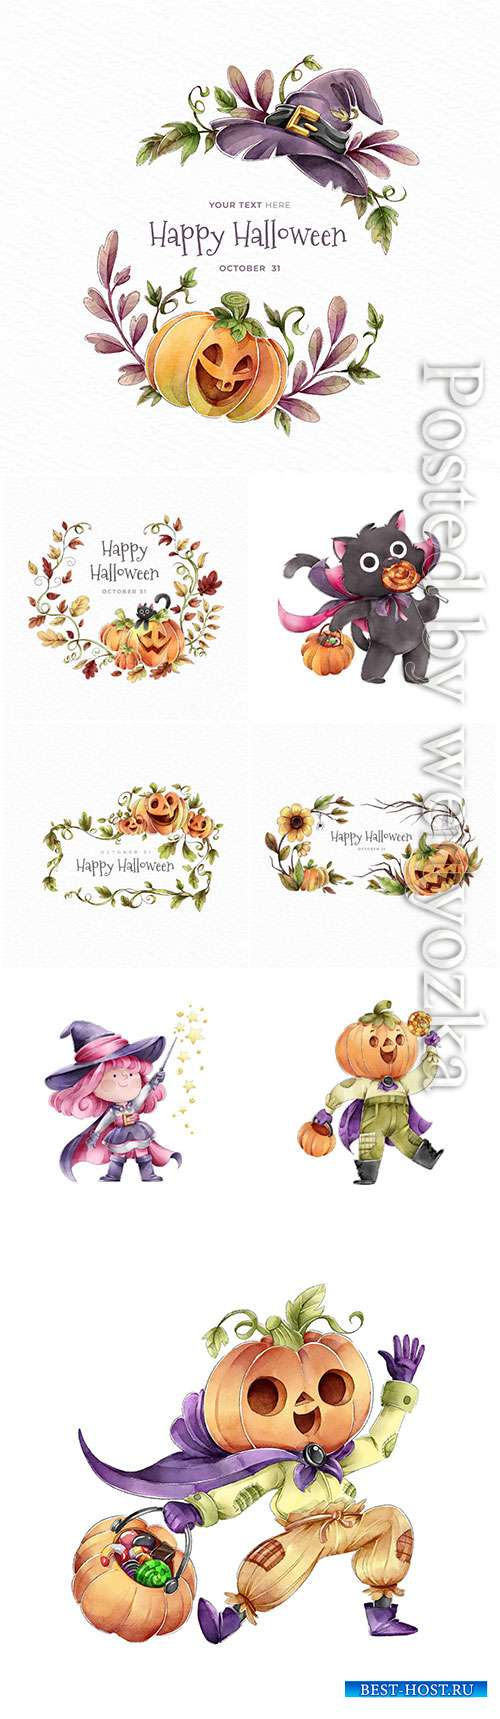 Happy halloween wreath of autumn leaves